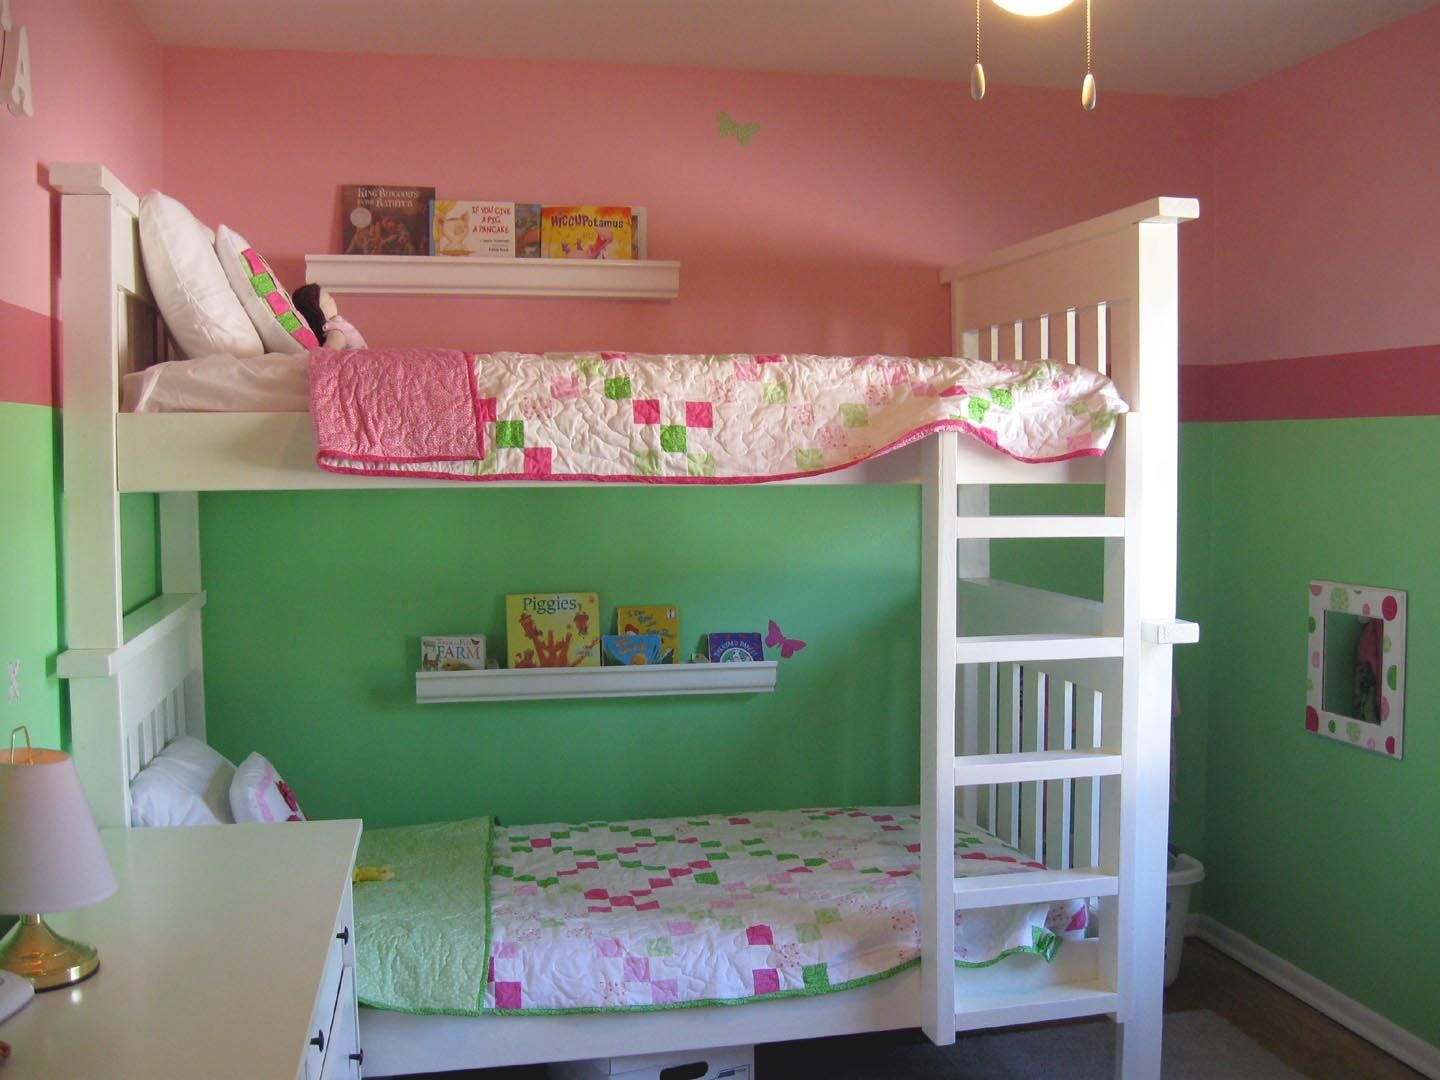 Luxury Bunk Bed Design Idea For Teenager Girl with Cute Pink ...